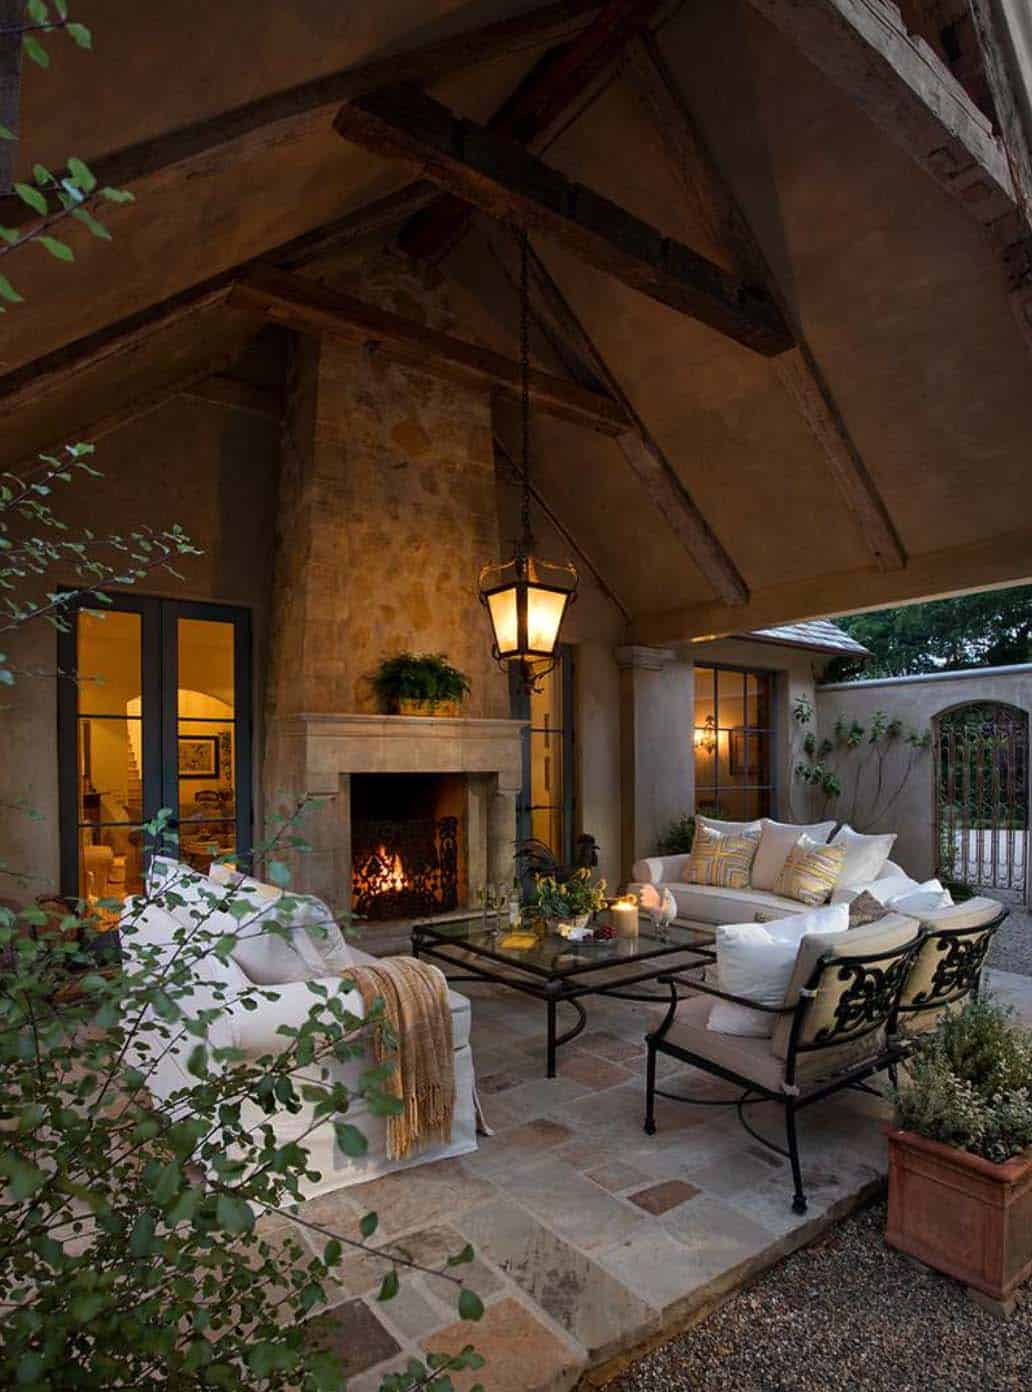 44 traditional outdoor patio designs to capture your